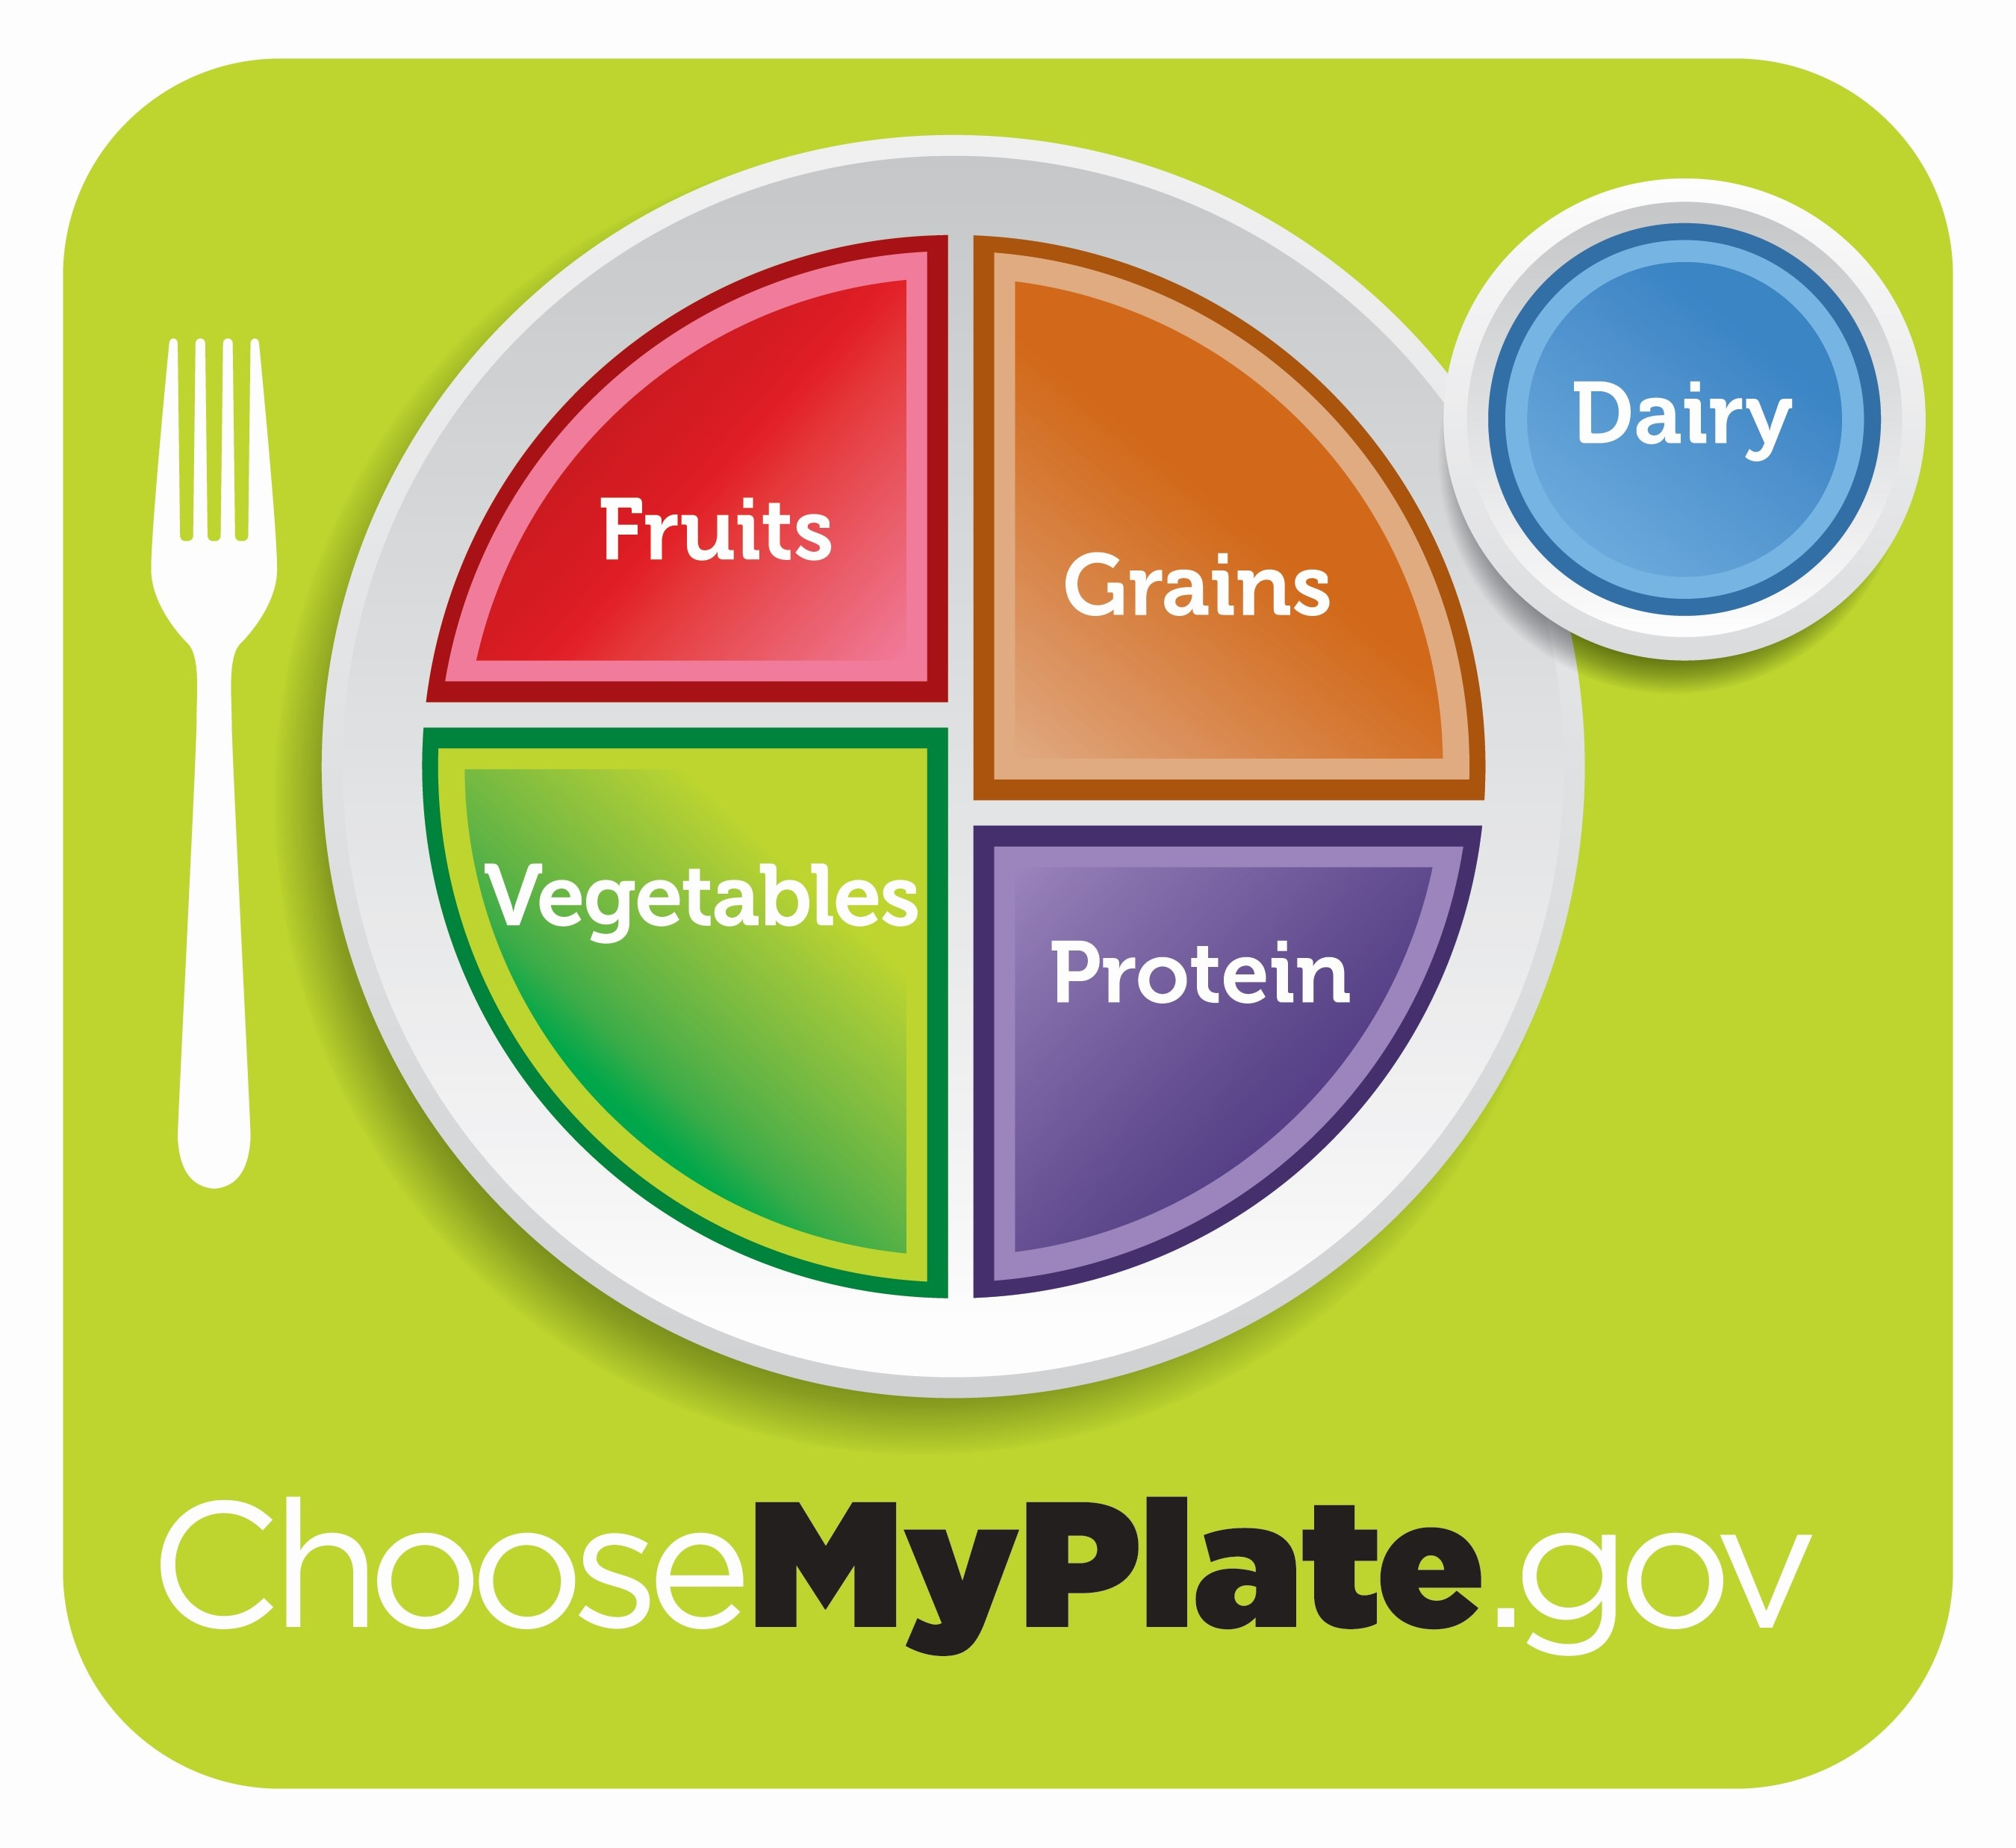 """Logo of ChooseMyPlate.gov website, showing a plate divided into quarters for fruits, vegetables, grains, and protein. A cup nearby is labeled """"dairy."""""""